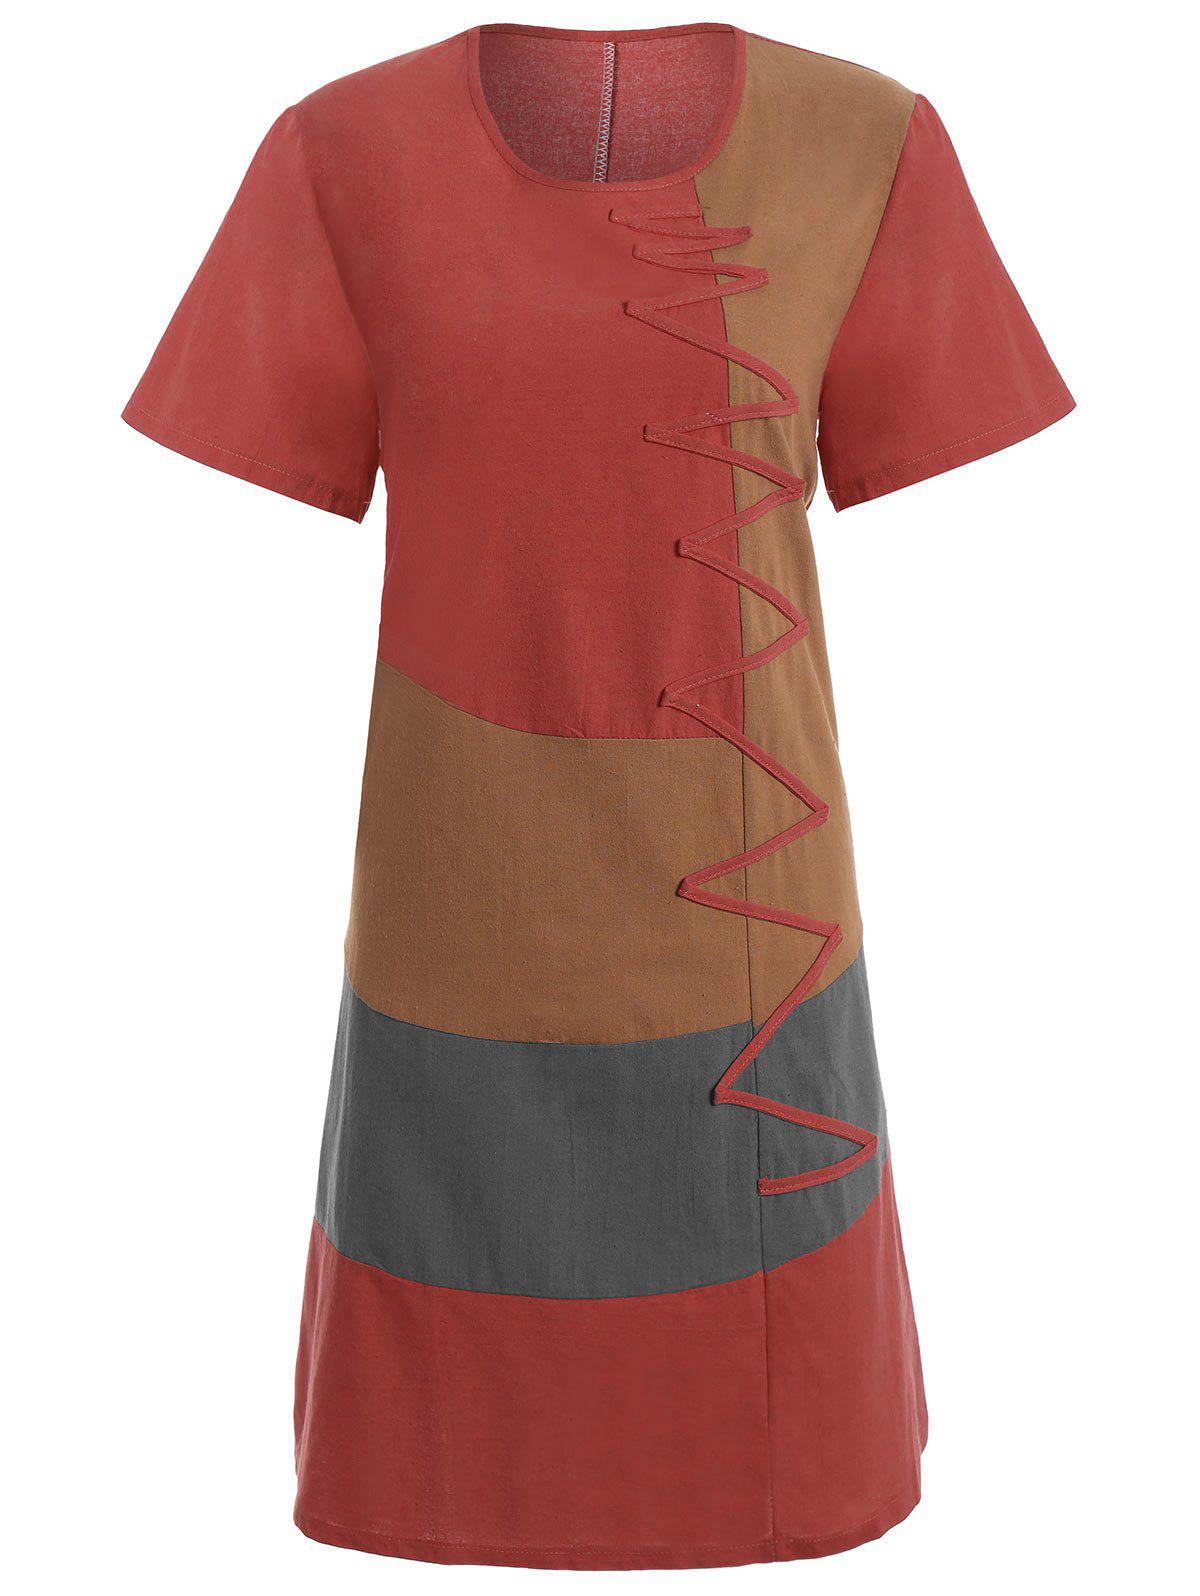 Red 3xl Plus Size Colorblock Embroidered Linen T Shirt Dress